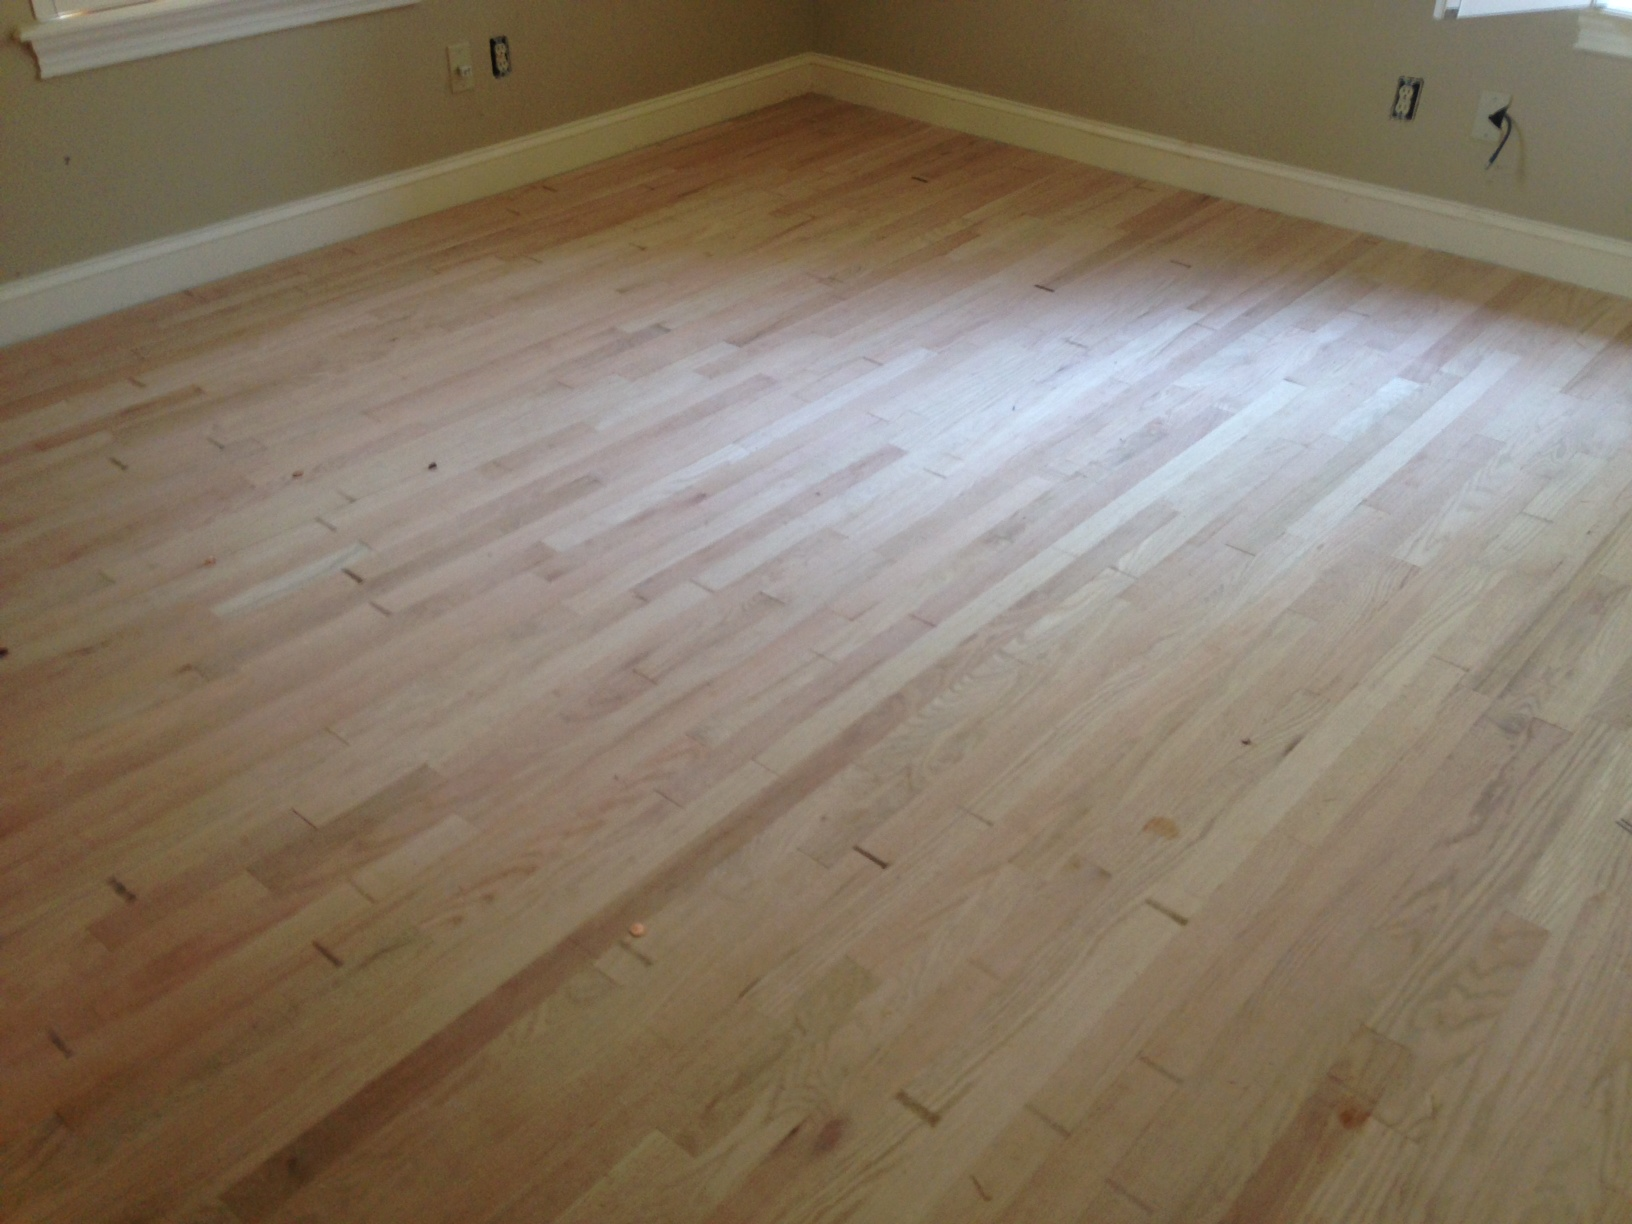 New Hardwood Floors Amp Wood Floor Refinishing Epping Forest